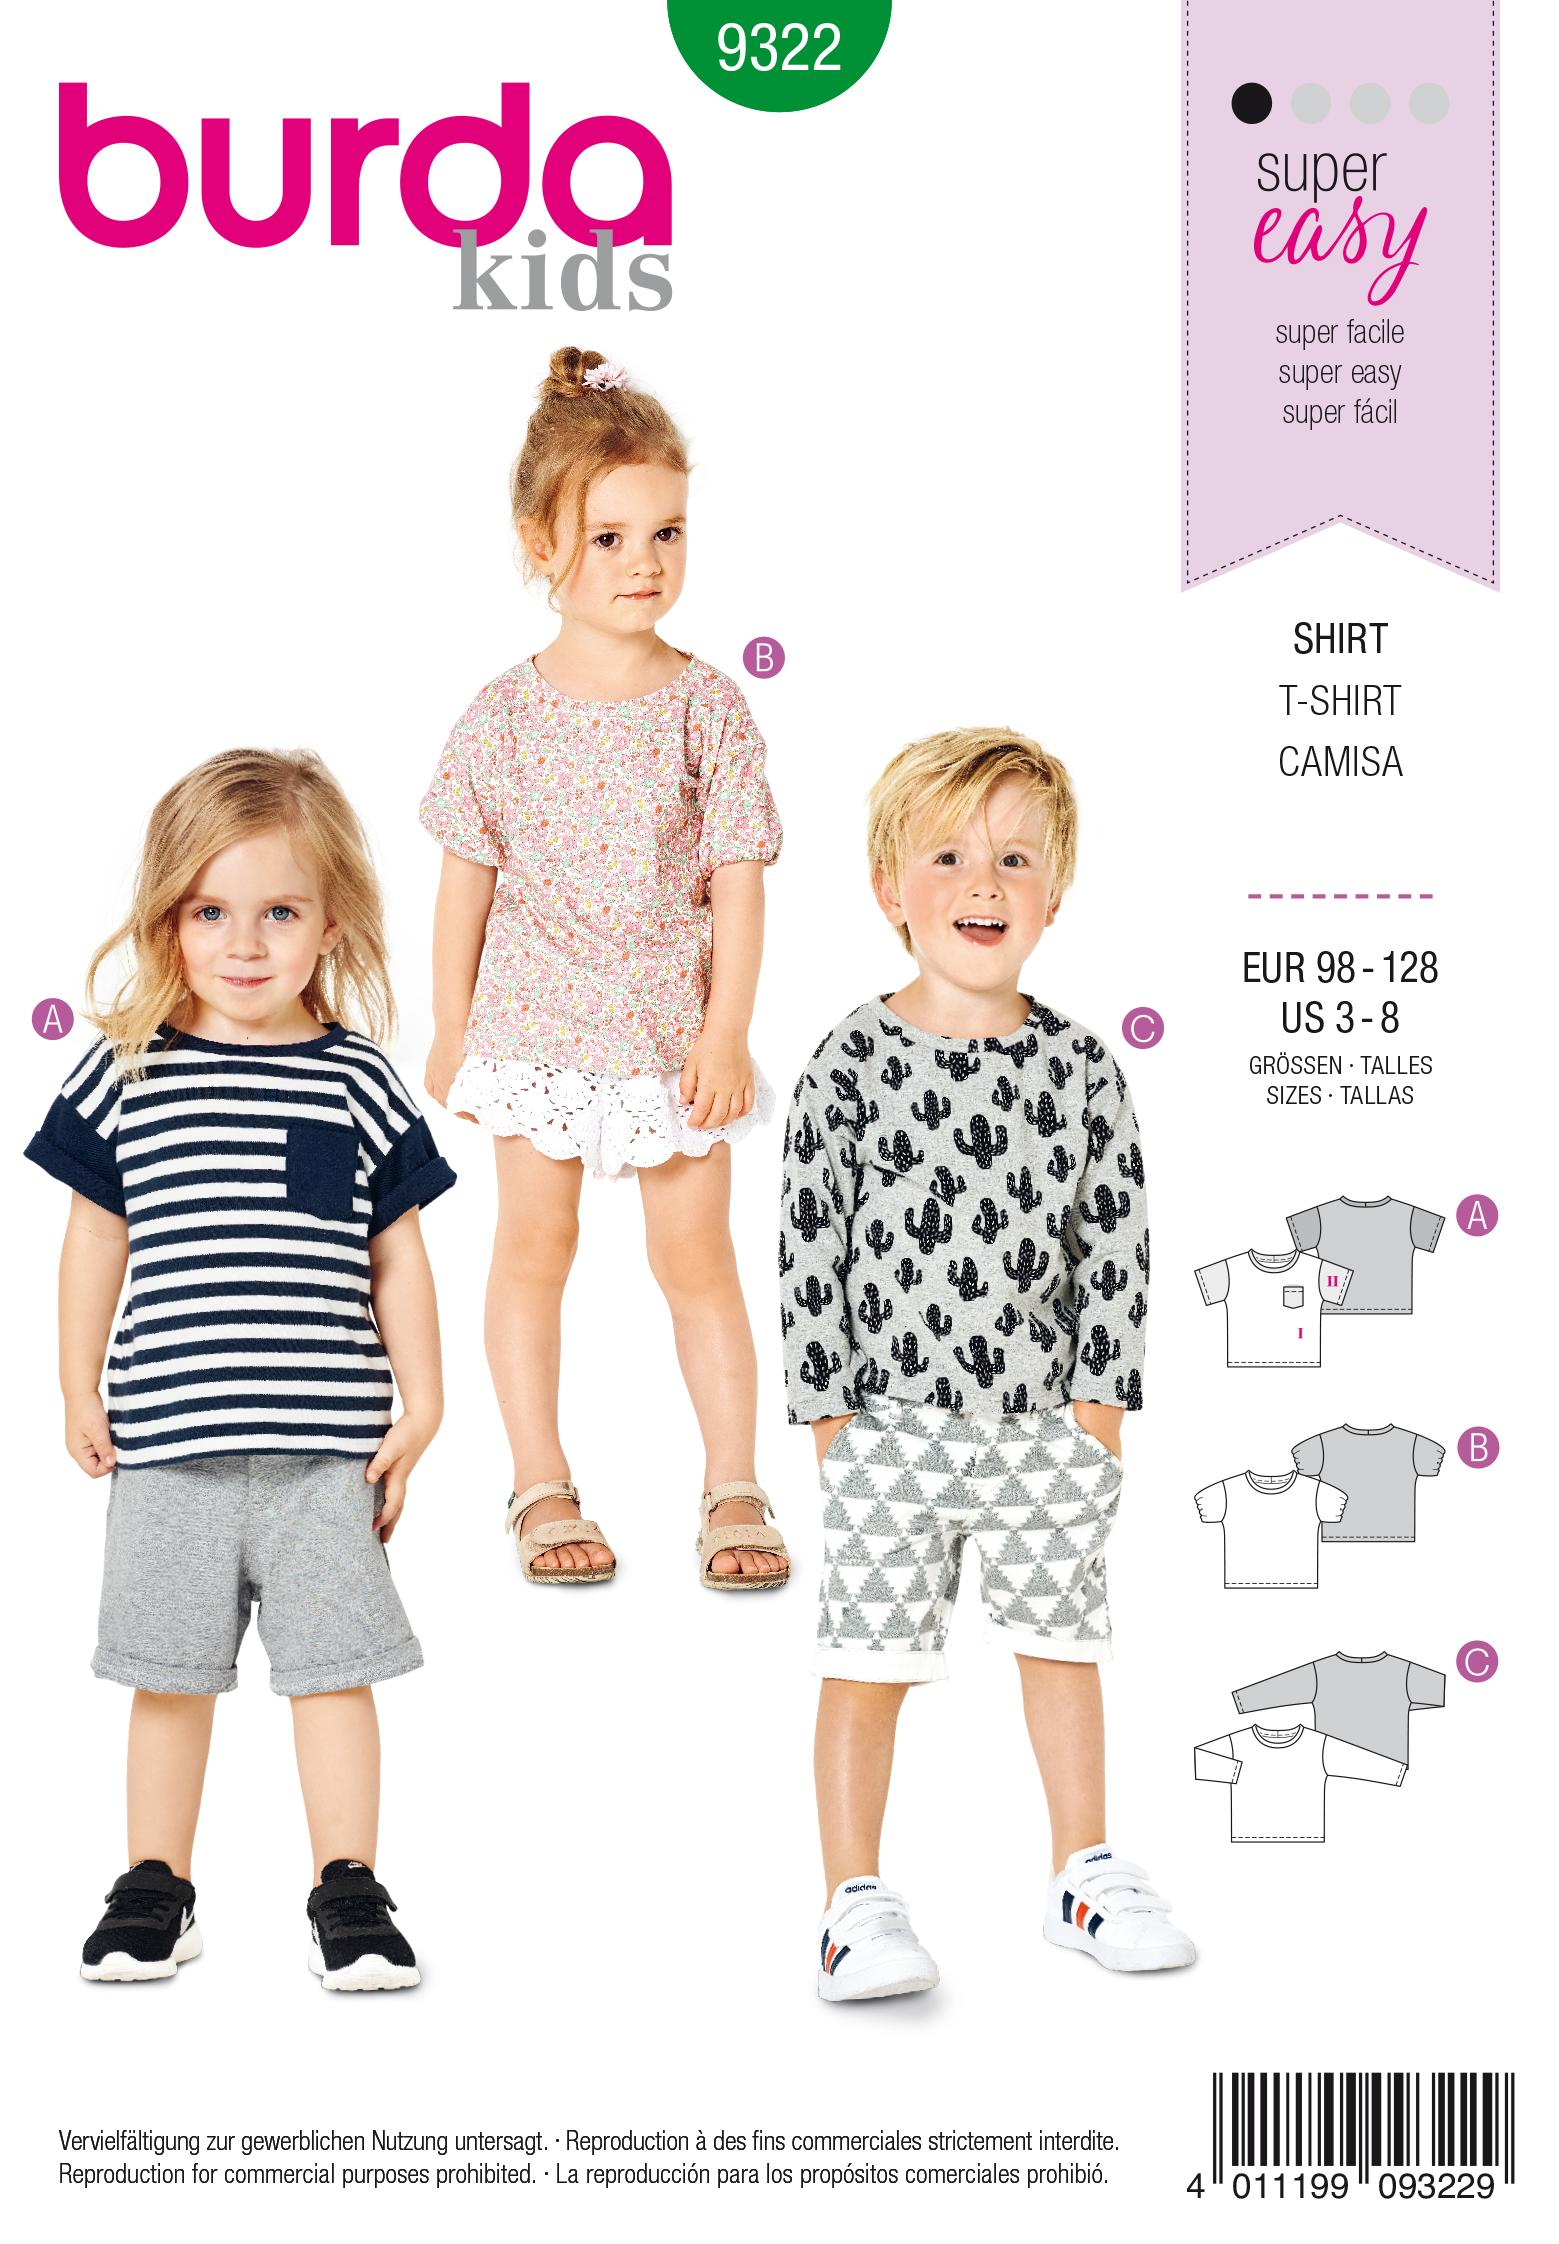 Burda 9322 Child's top